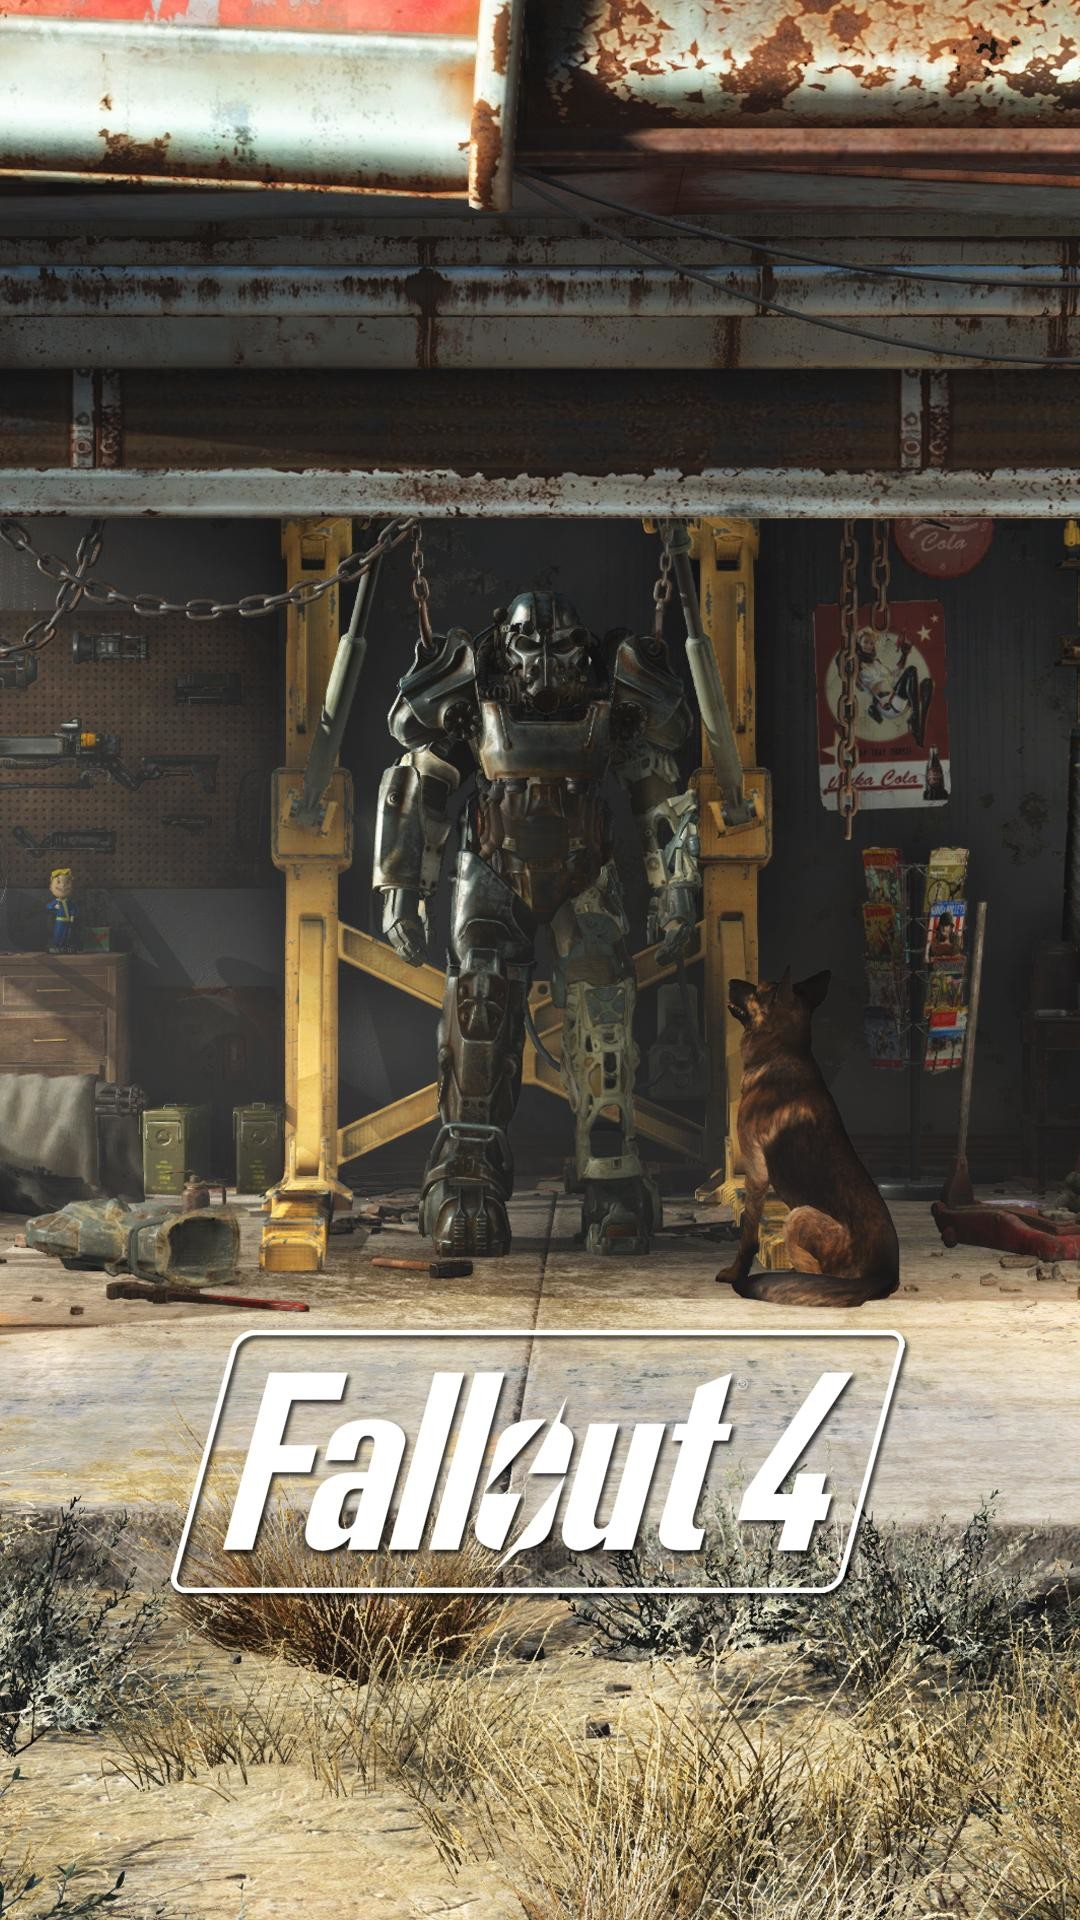 Vegas New And Fallout Skyrim